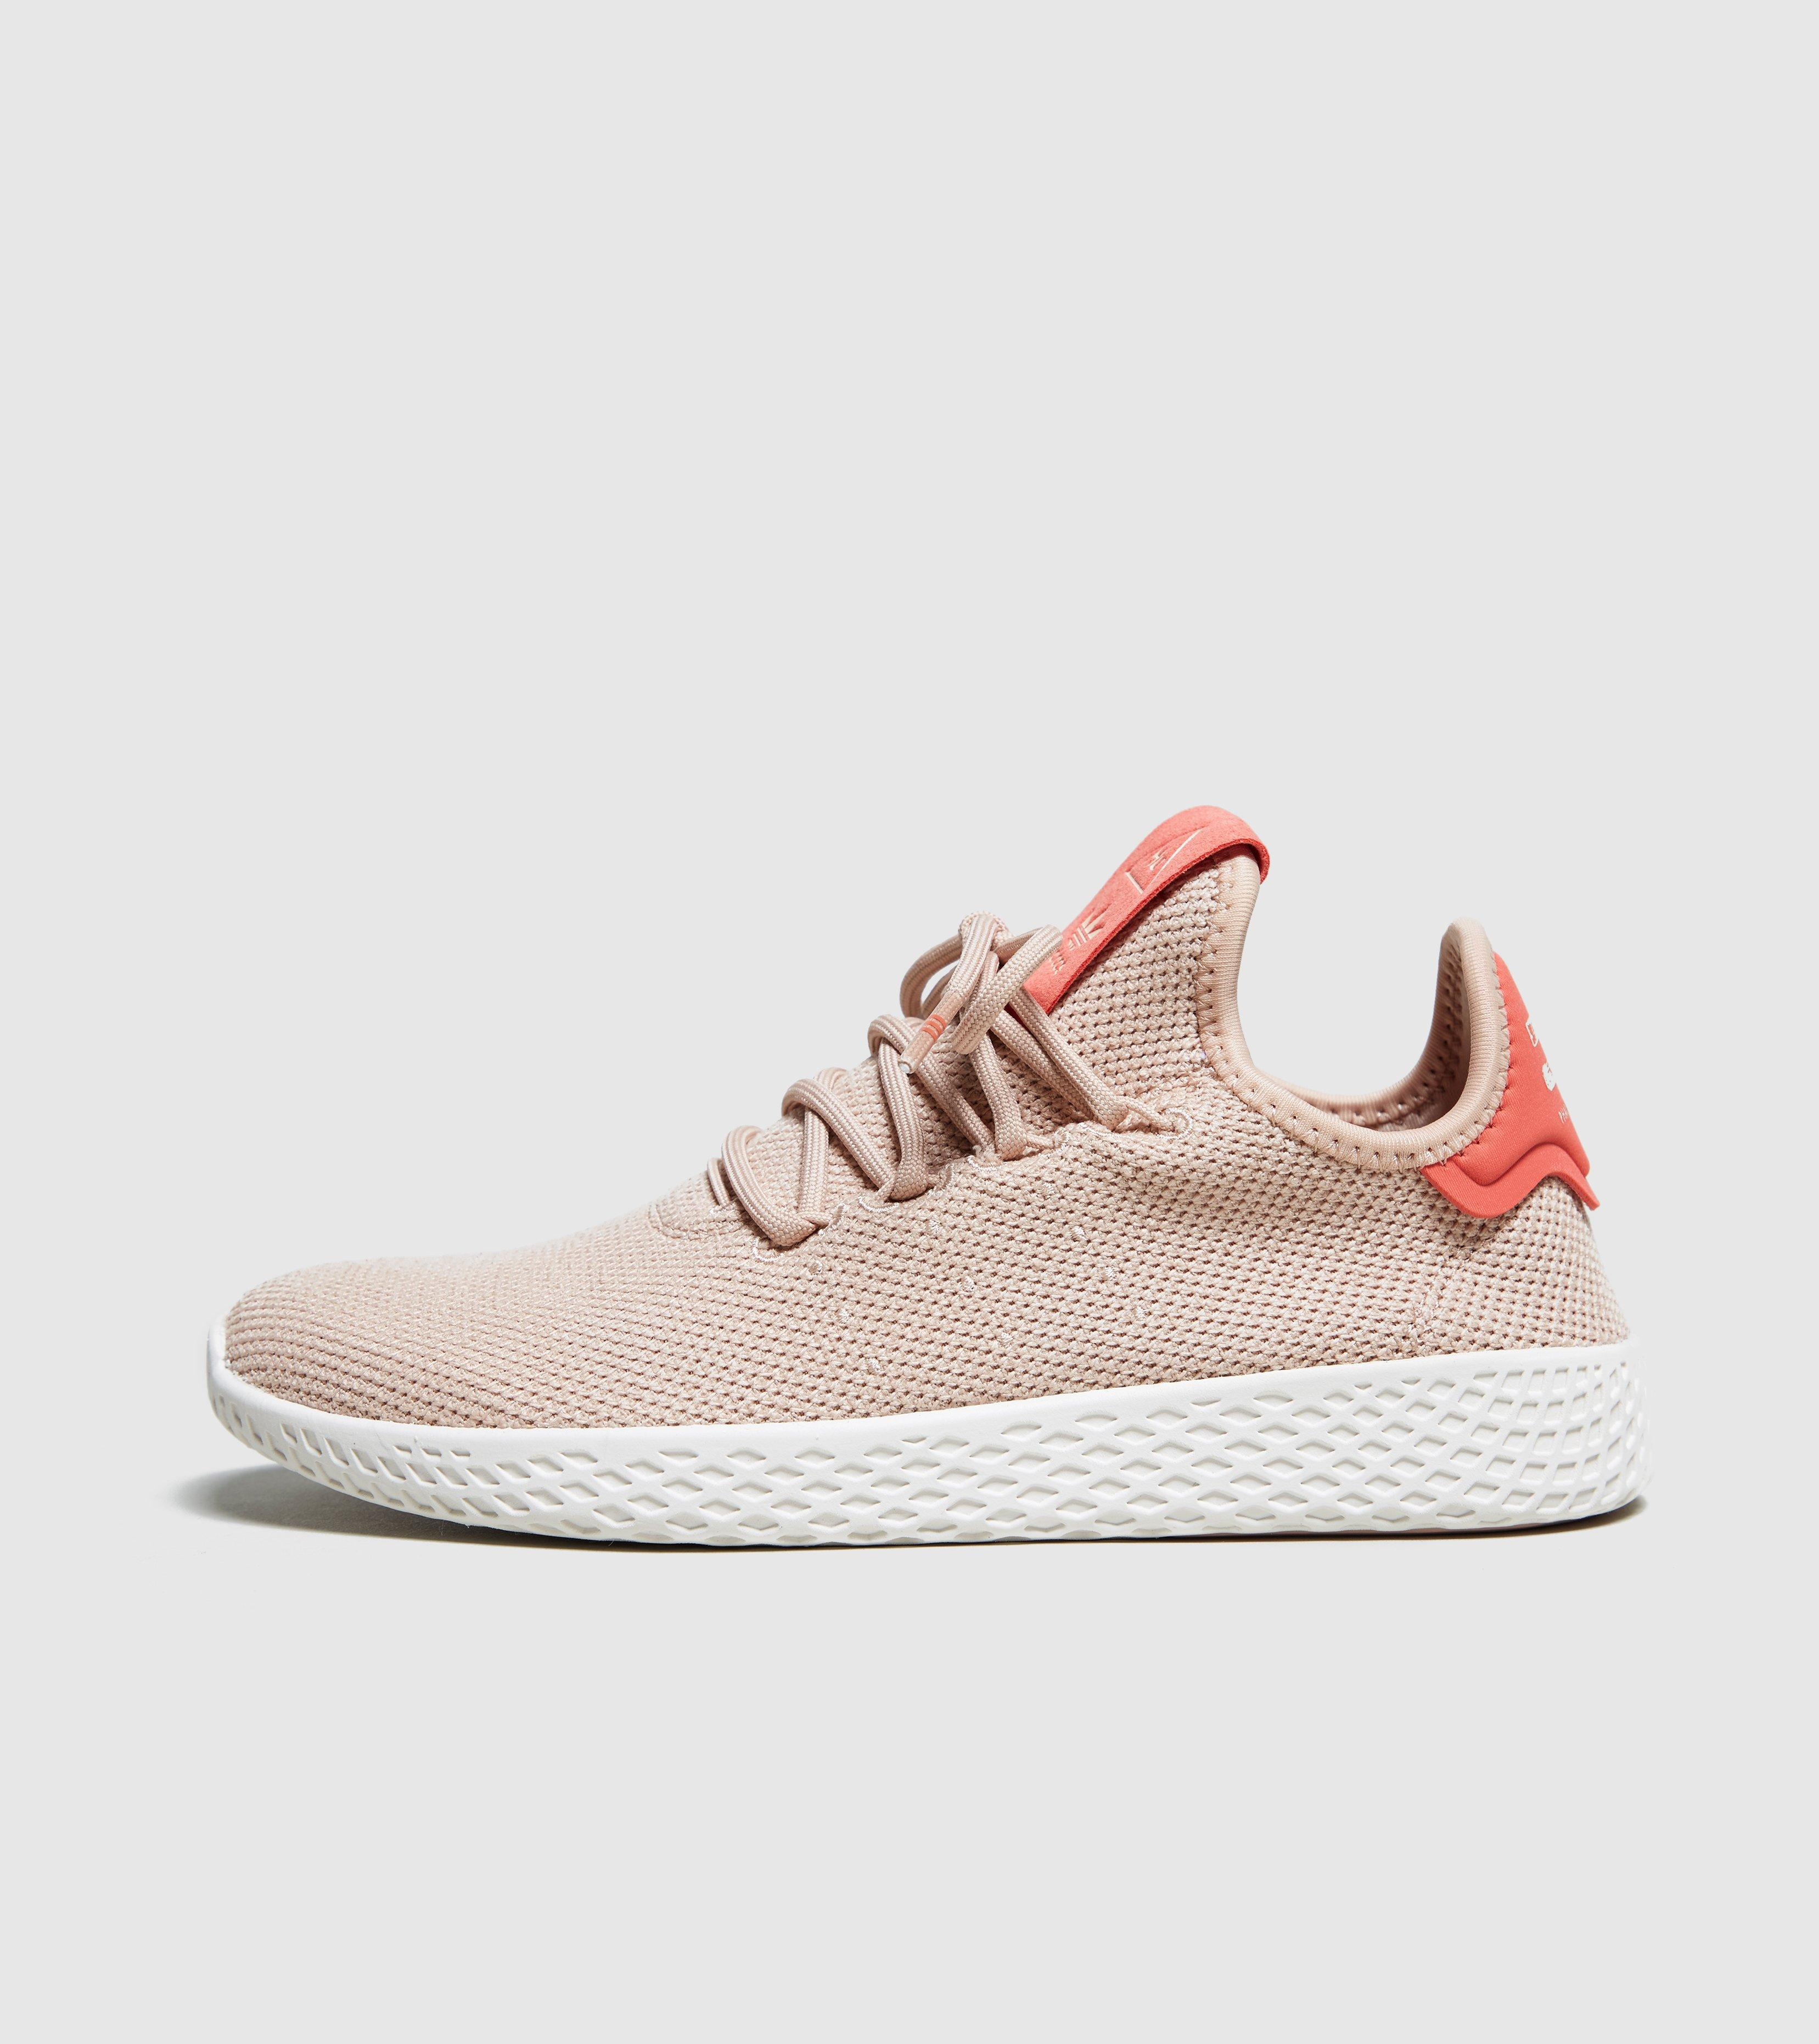 Lyst adidas originali x pharrell williams tennis hu donne in marrone